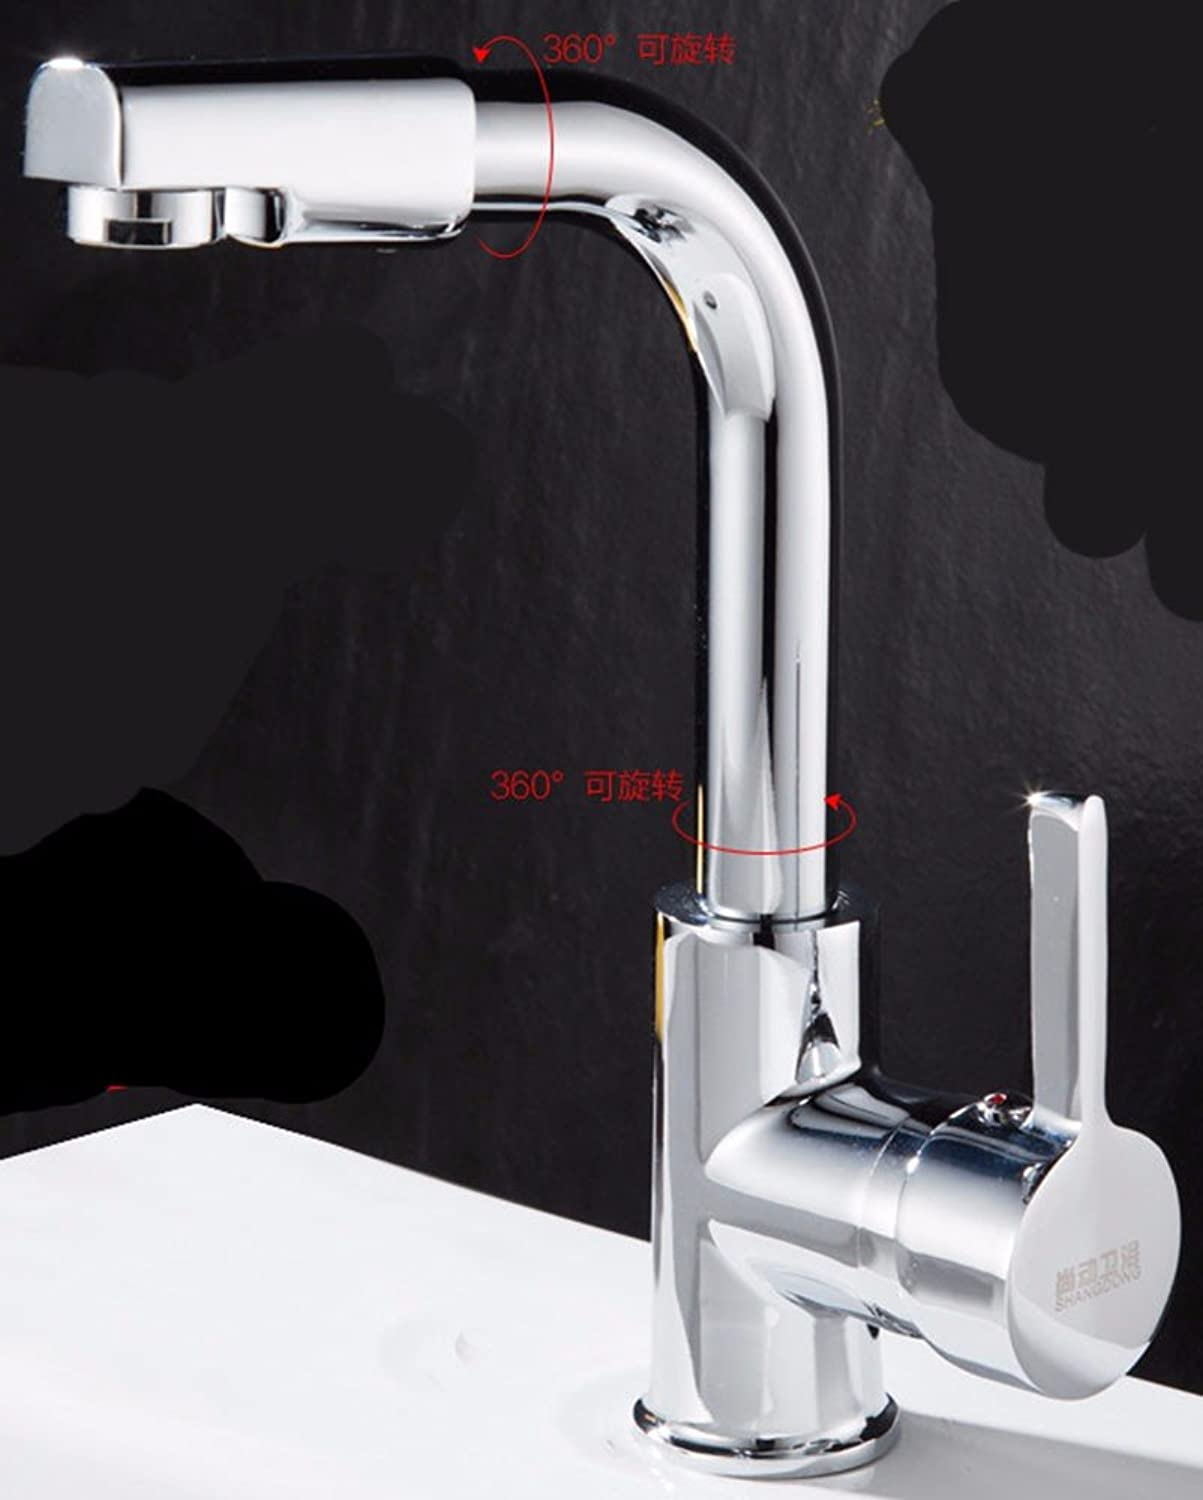 Hlluya Professional Sink Mixer Tap Kitchen Faucet A cold, redation, bath, wash basin, the outdoor balcony water taps, 1